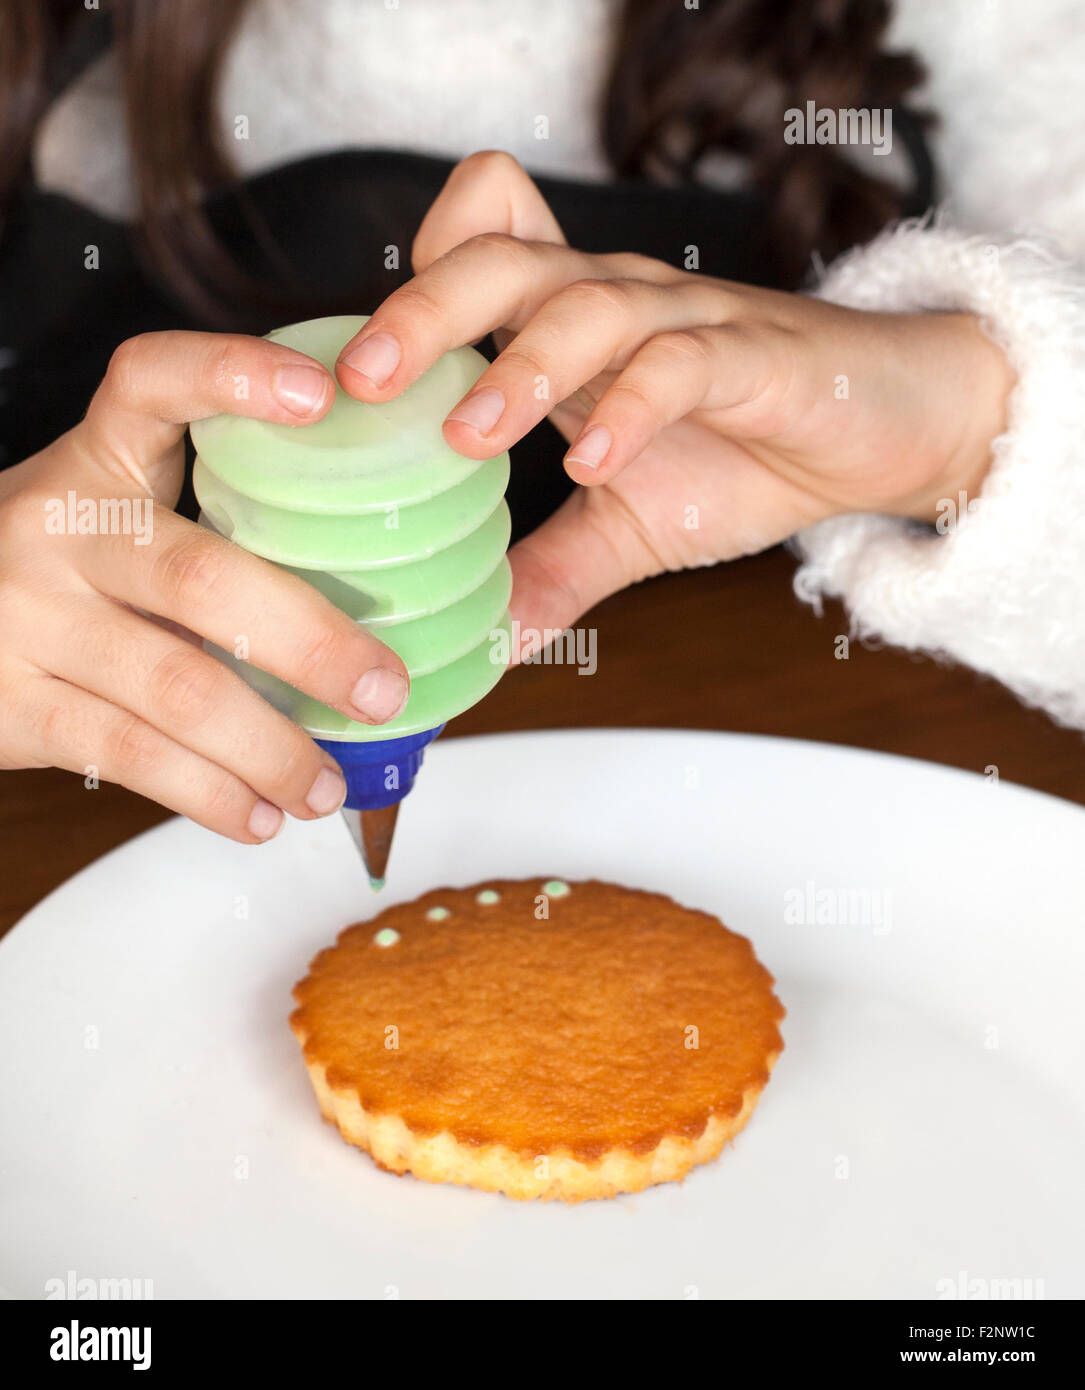 Hands of a girl decorating cakes - Stock Image